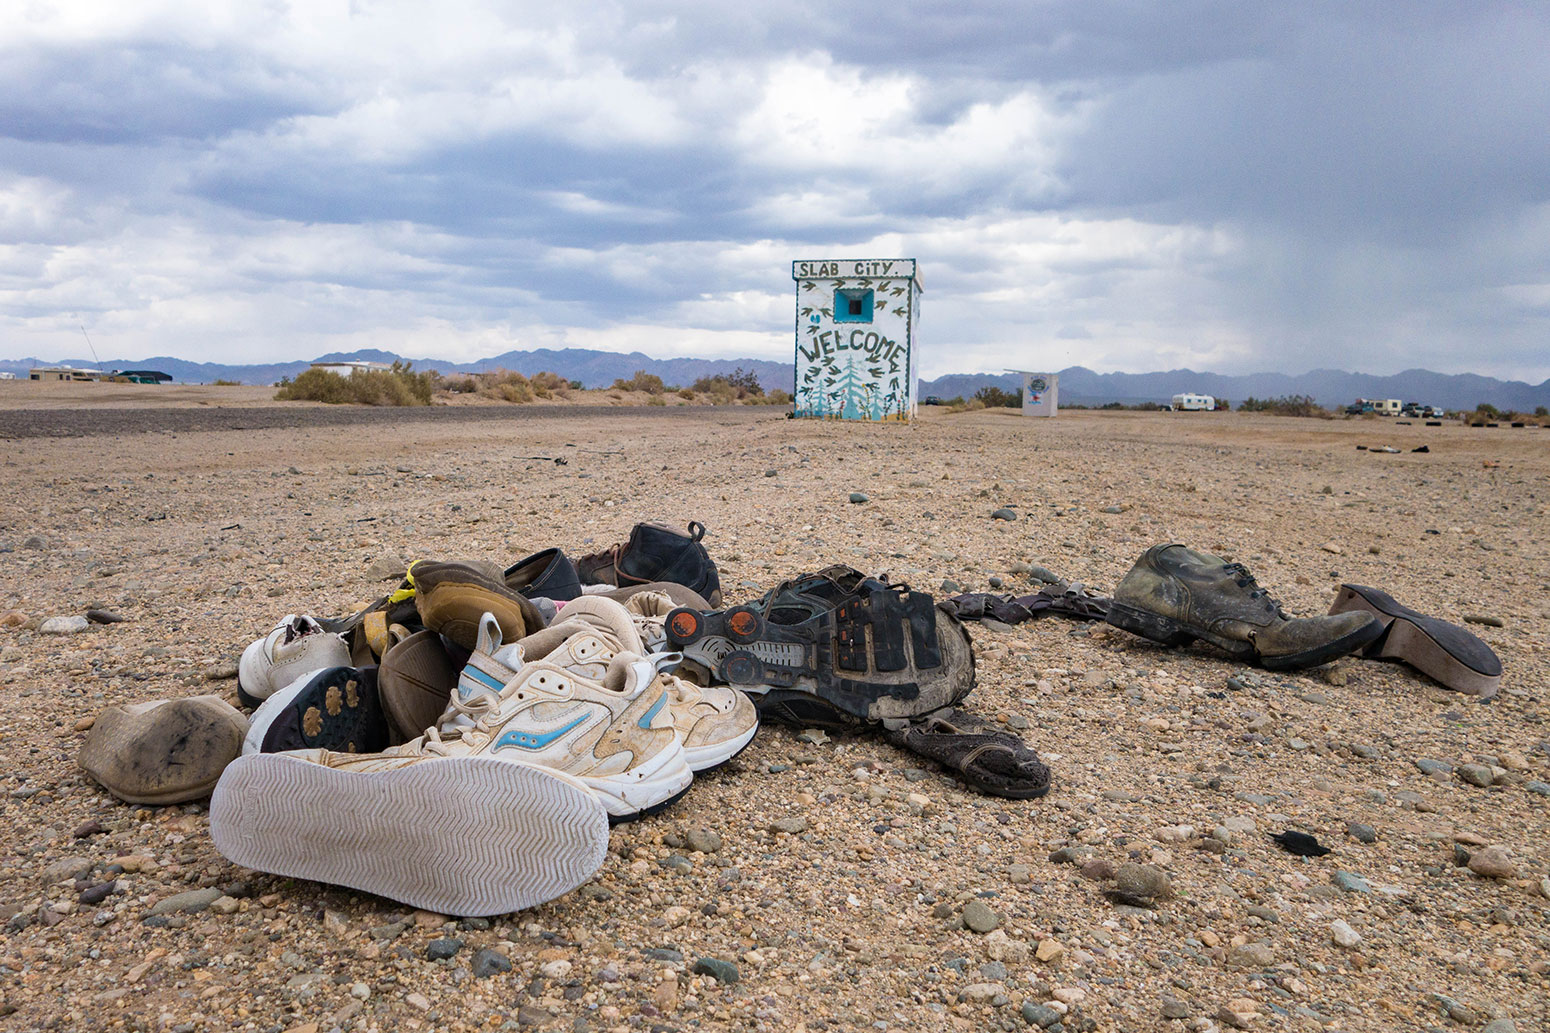 Salton Sea - Slab City